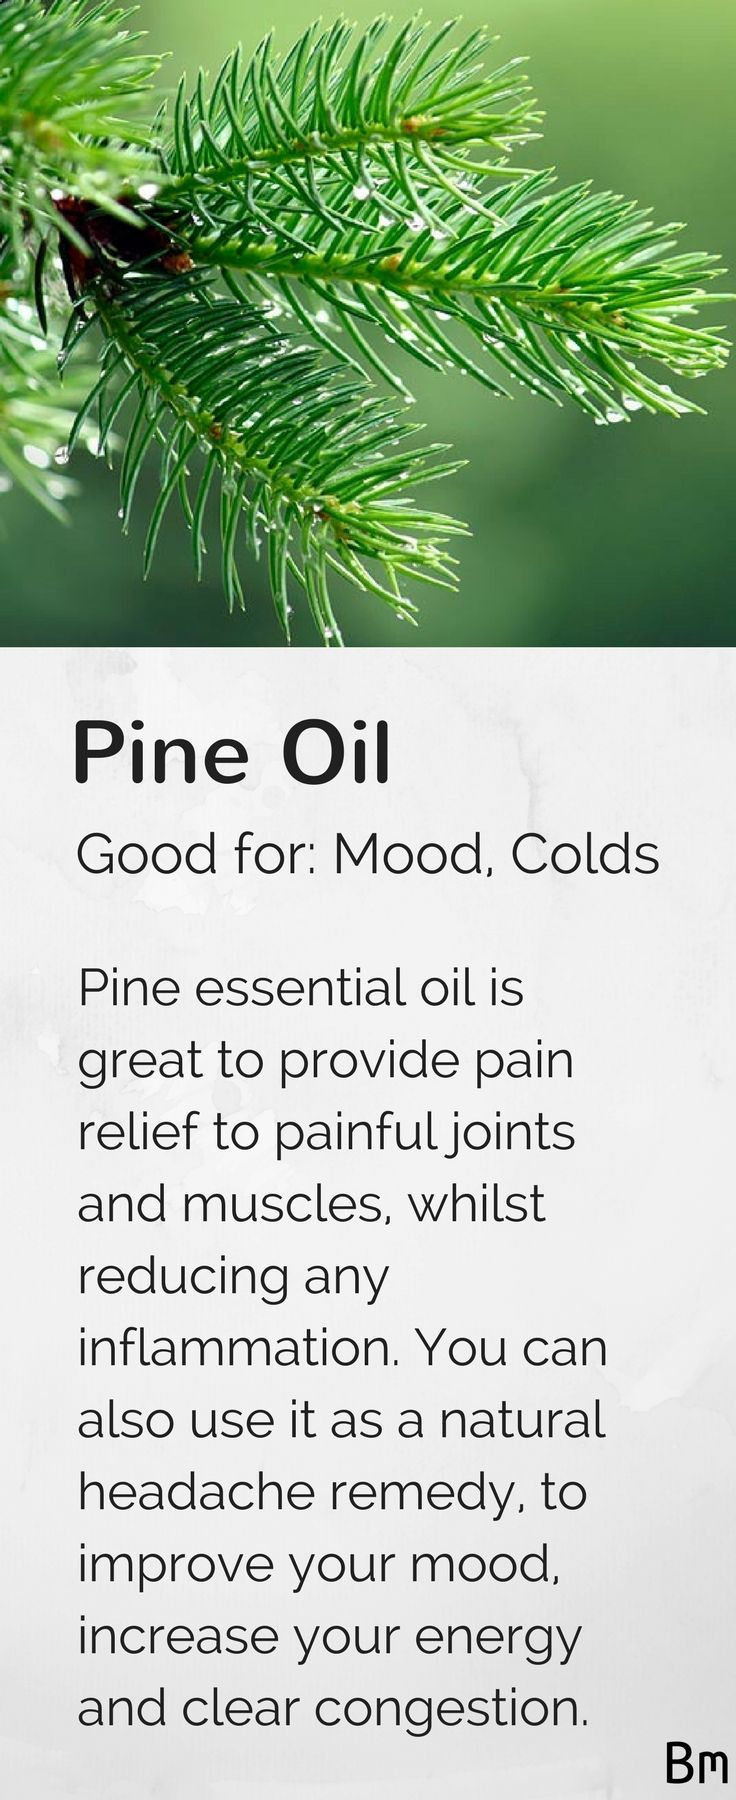 Pine essential oil reduces inflammation, eases painful joints, works as a natural headache remedy, improves your mood, increases energy levels and clears congestion. Diffuse this oil in an oil diffuser to improve your mood and energy levels or add it to your favourite lotion and massage it into any joints to relieve pain. Learn more about pine and other essential oils in this complete guide by clicking on the pin above! :)